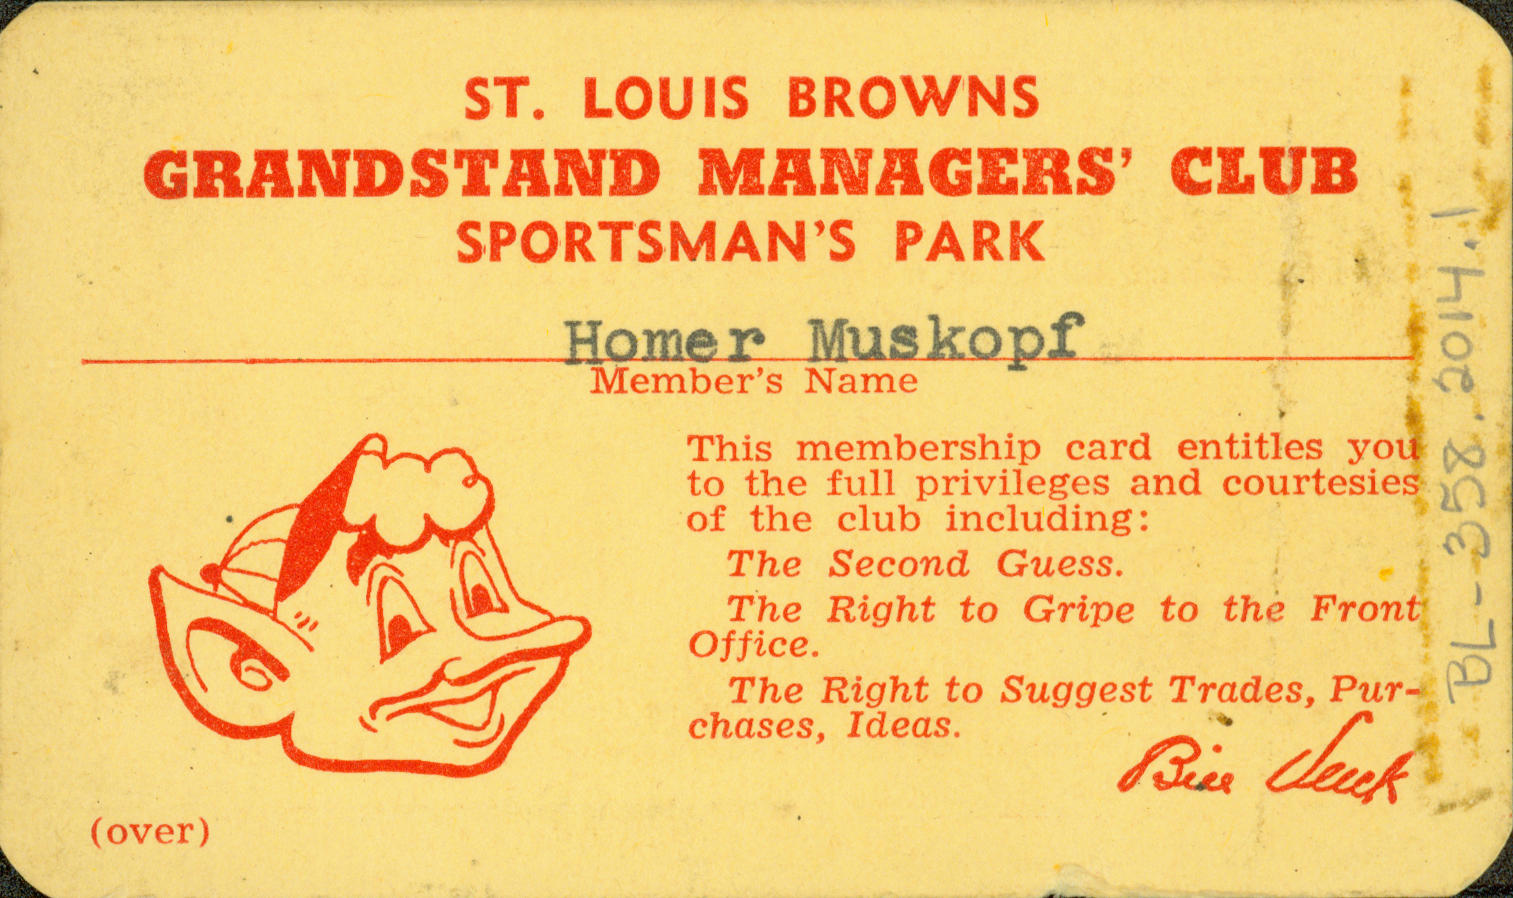 This ticket, belonging to a St. Louis Browns fan, was created specifically for Grandstand Managers' Night. It is now preserved in the Hall of Fame's collection. (National Baseball Hall of Fame)